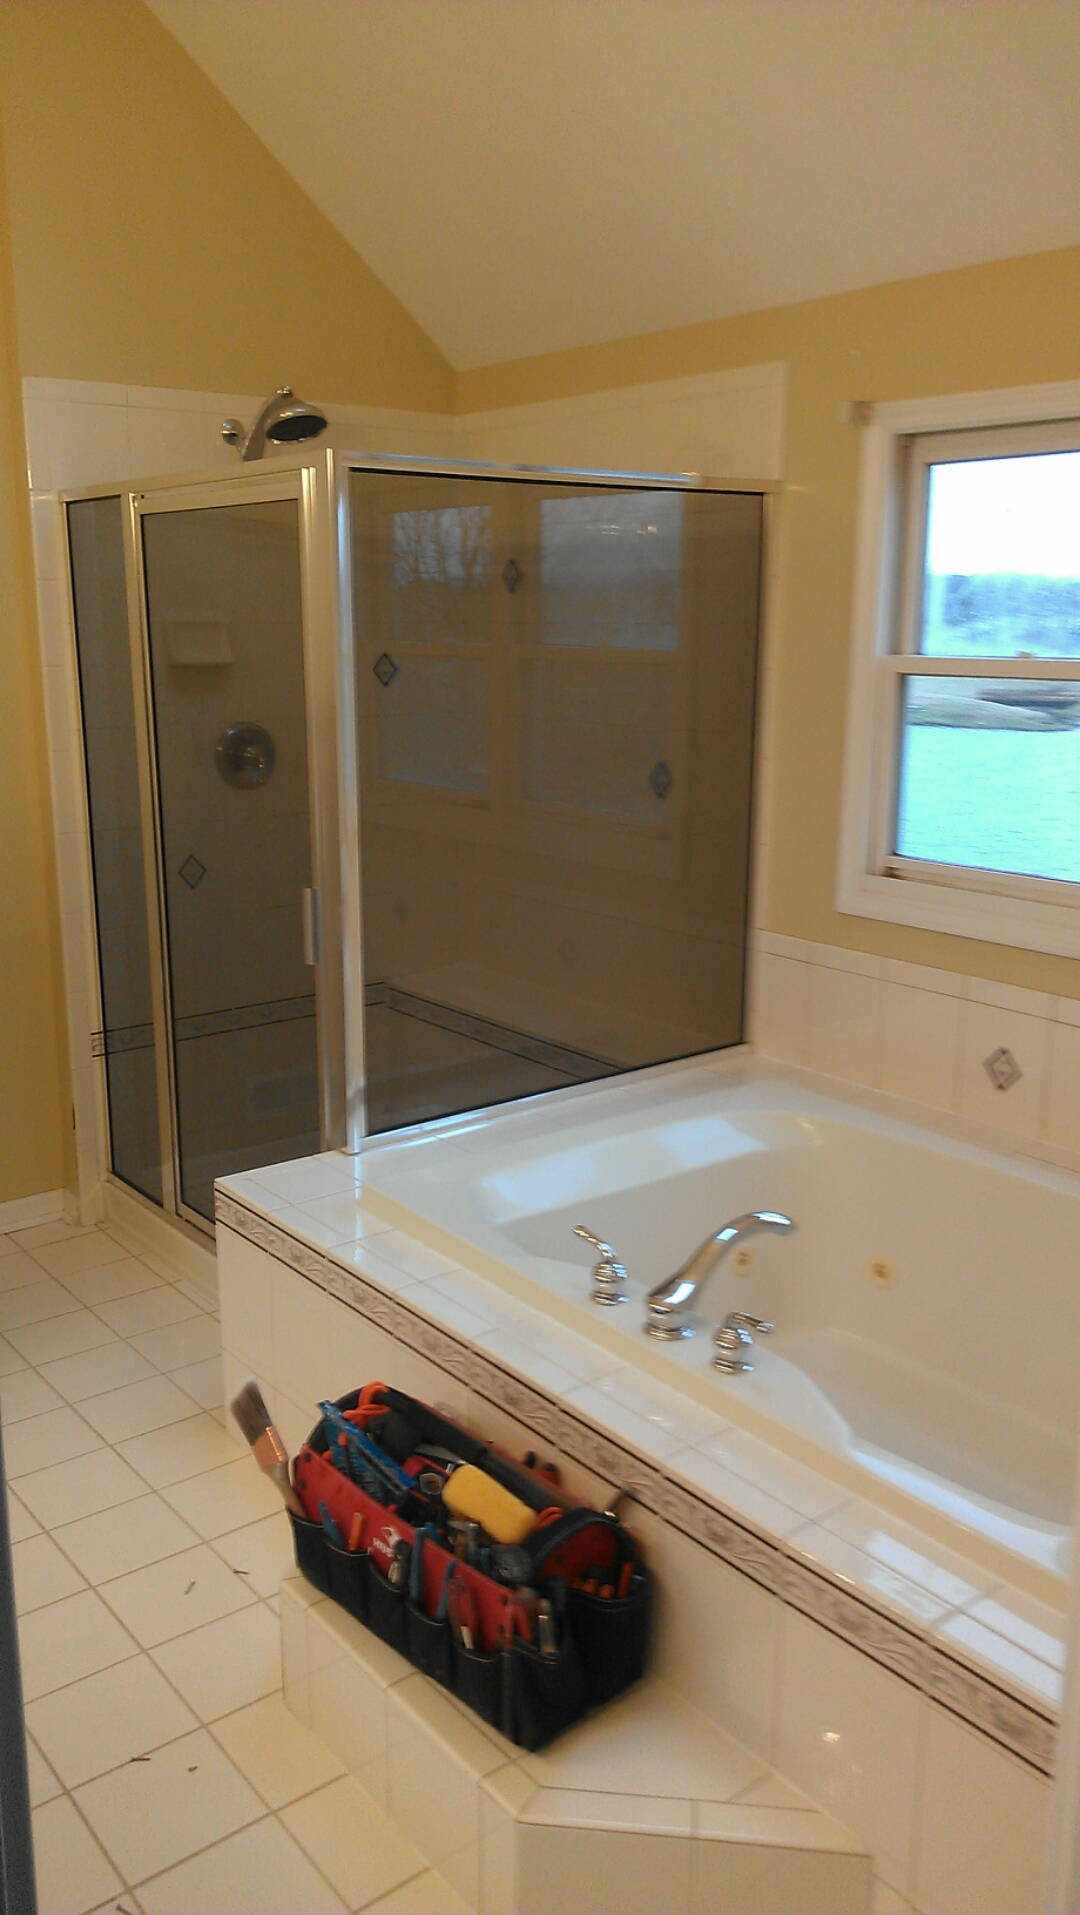 Bathroom Remodeling Aurora, IL - JW Construction & Design Services